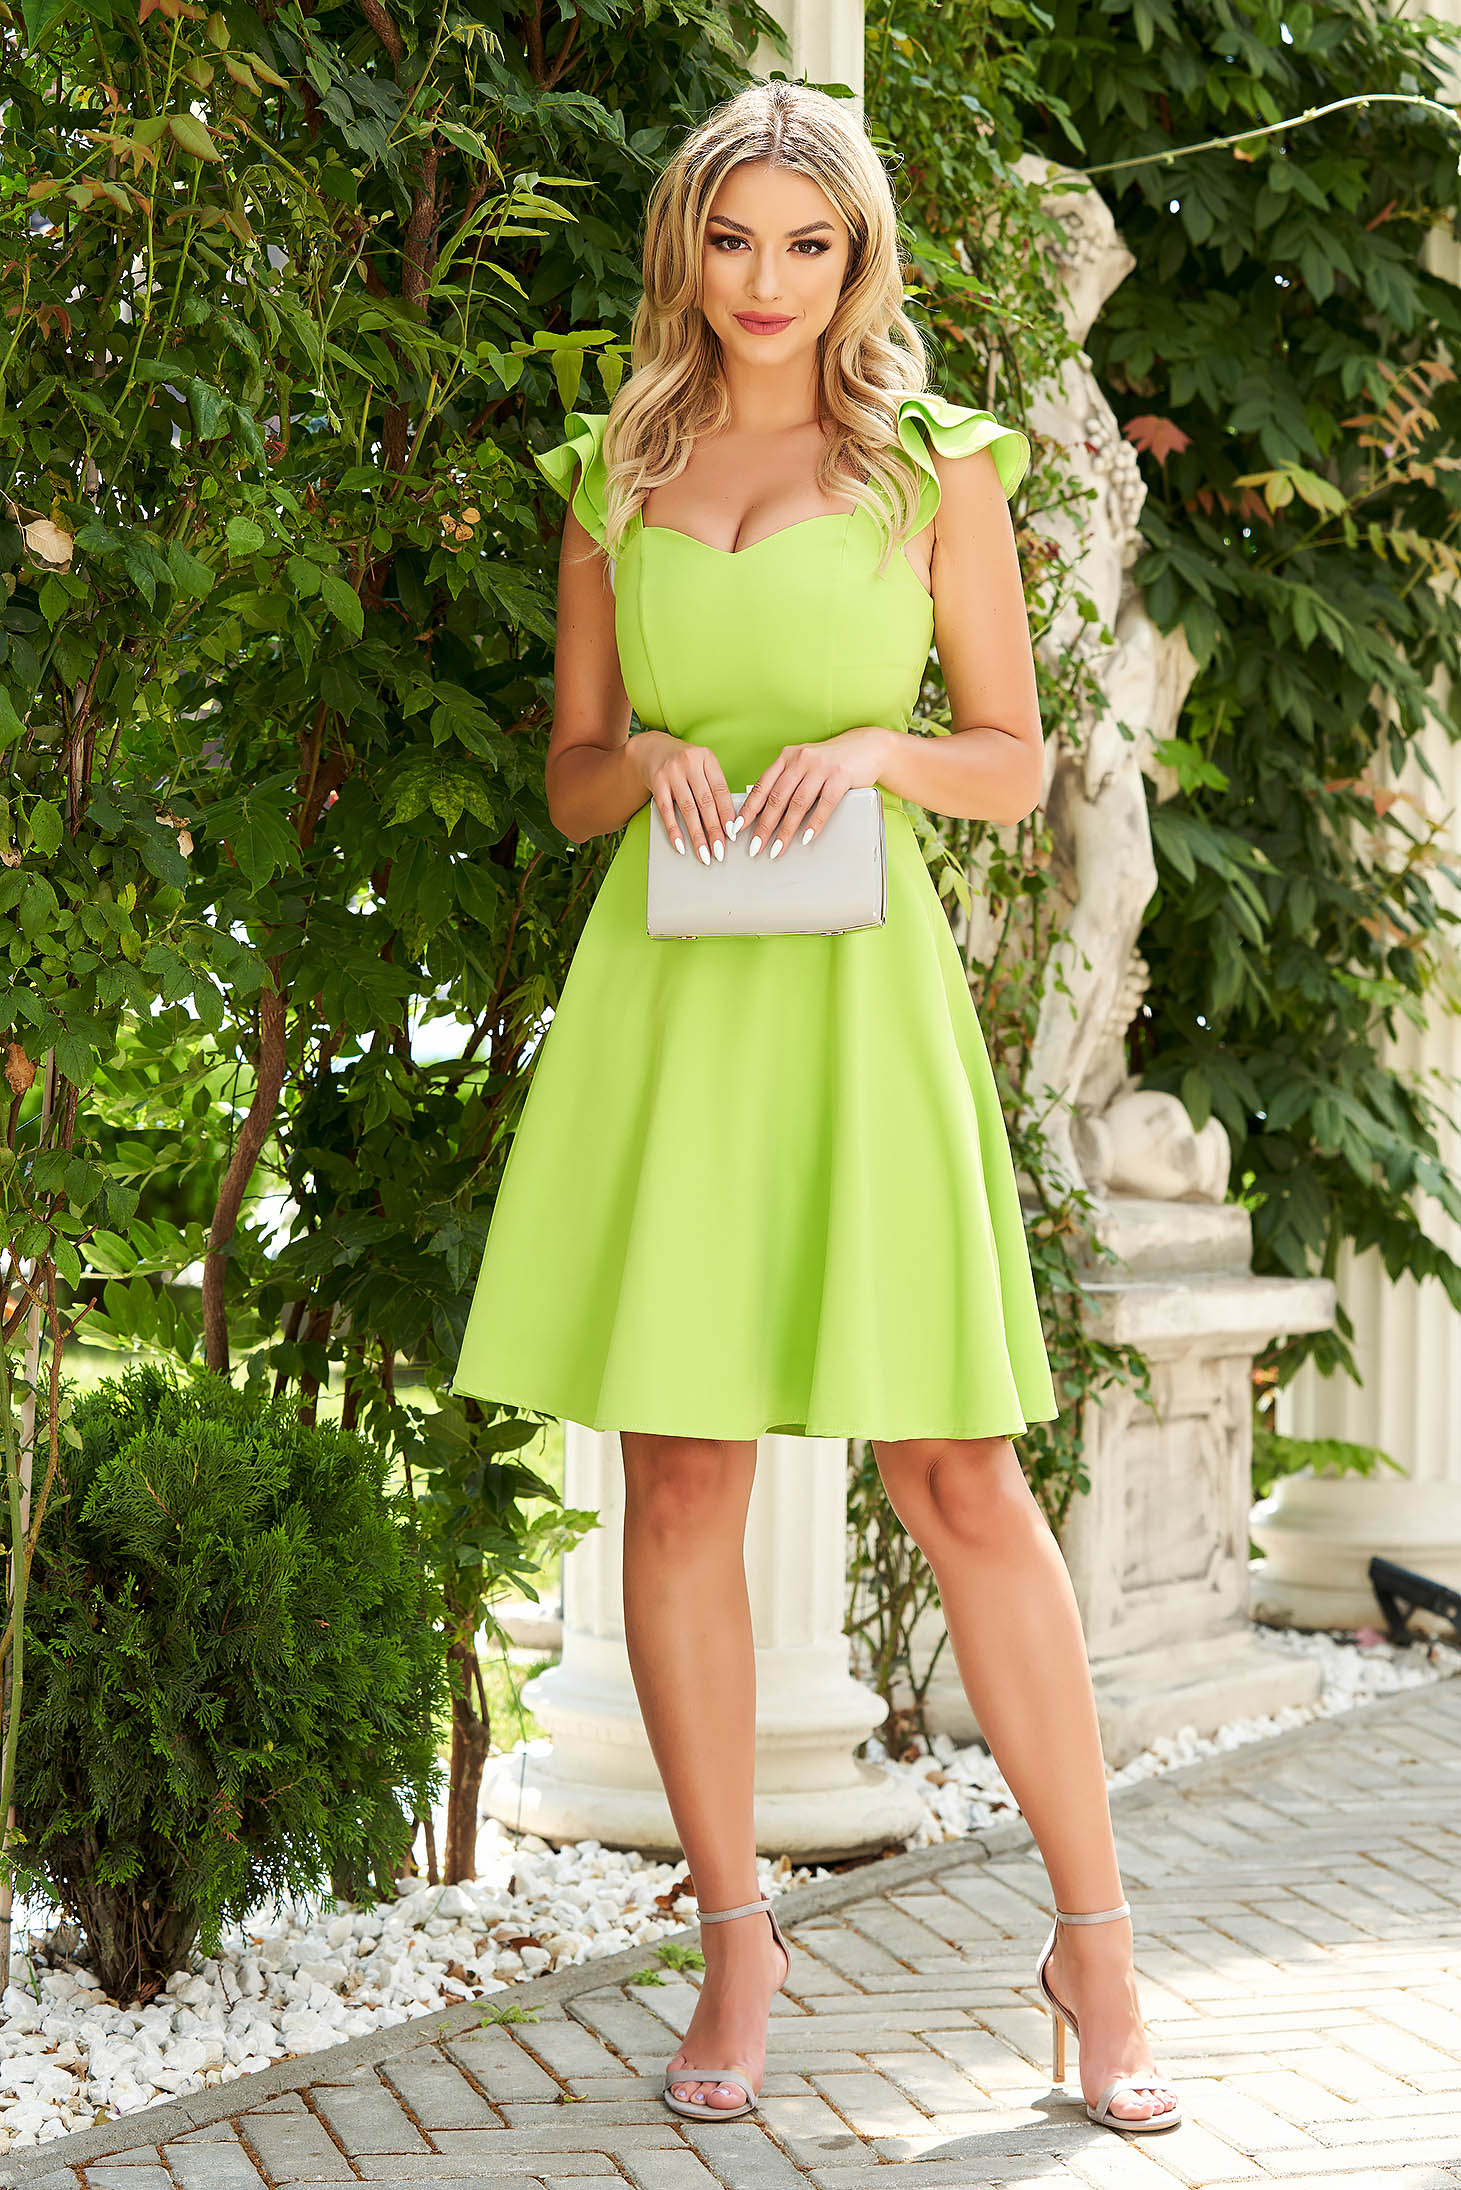 Dress StarShinerS green elegant short cut cloth with ruffle details thin fabric